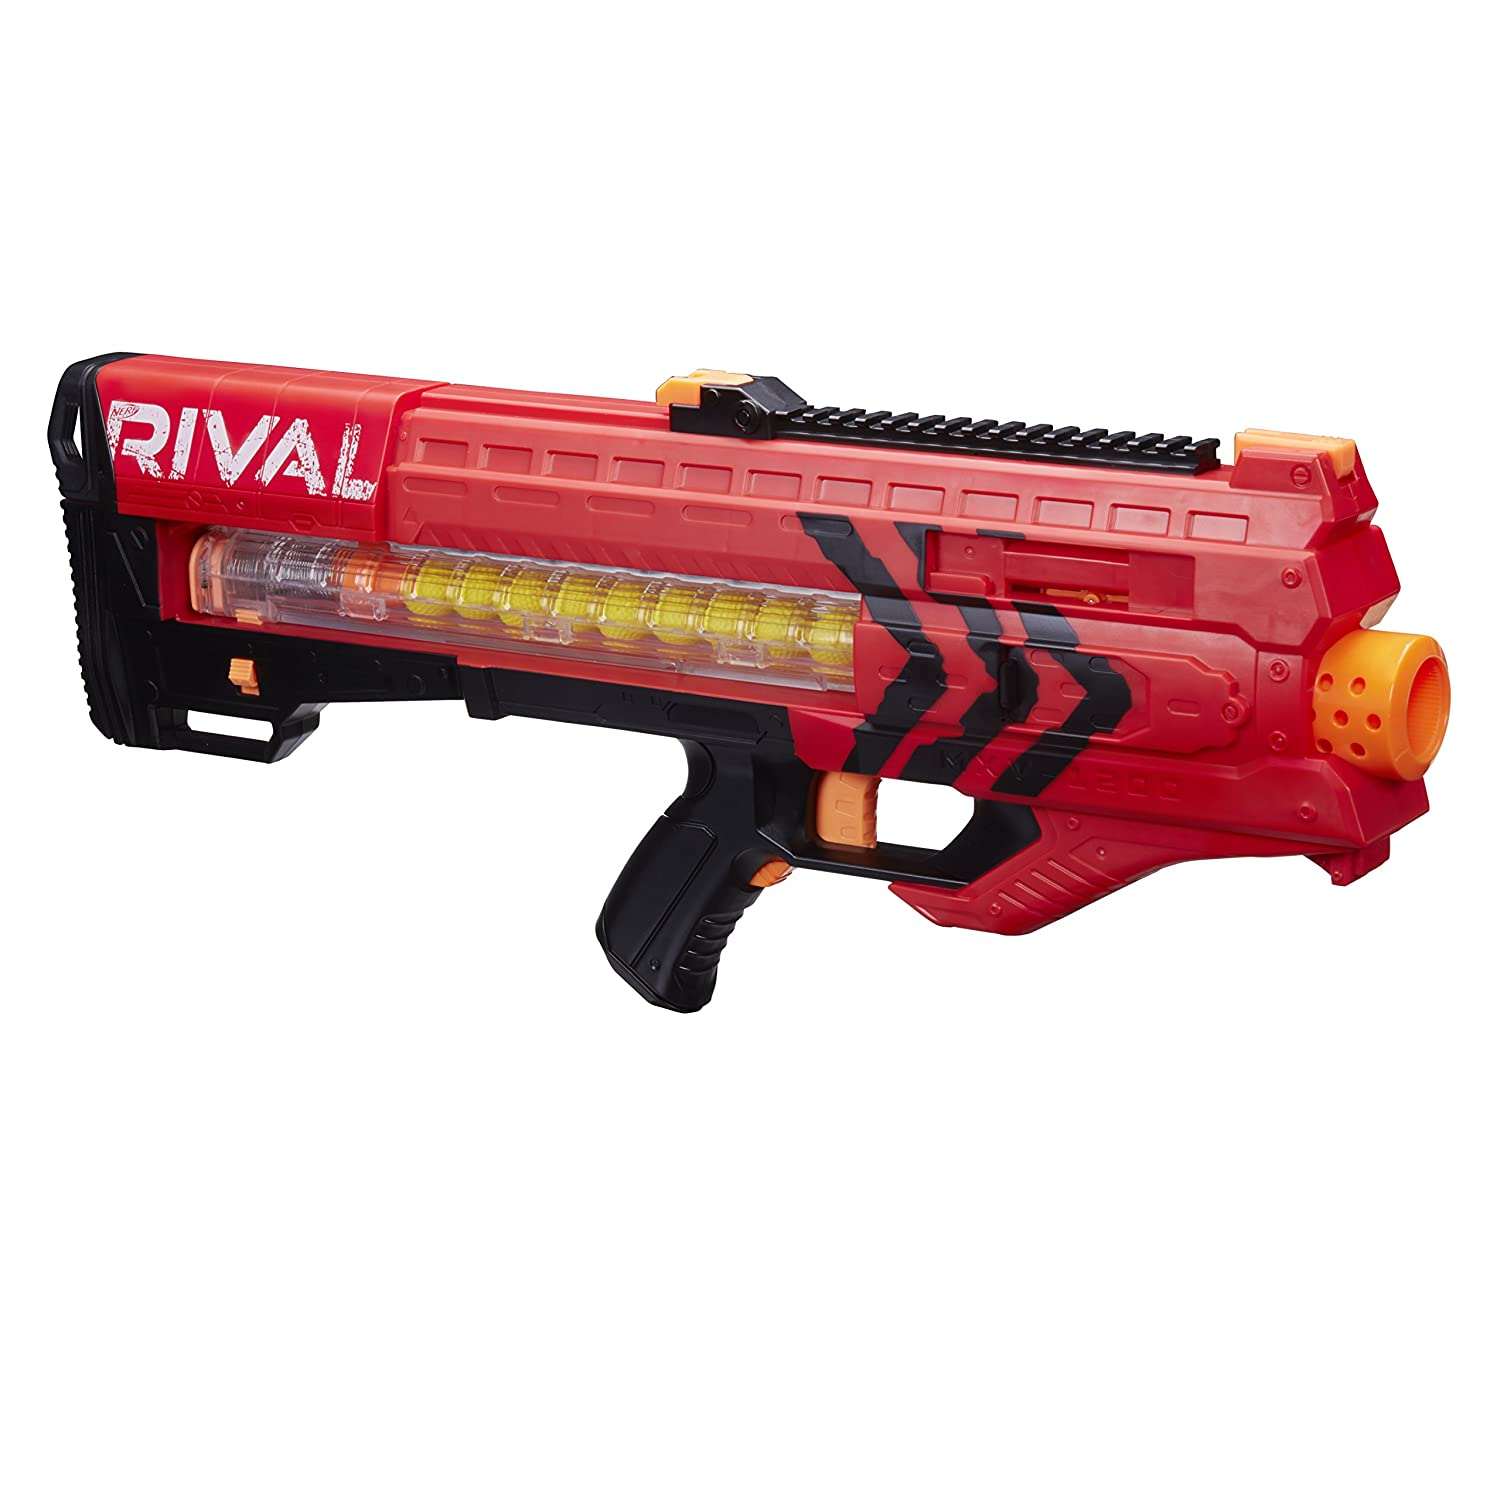 Nerf Rival Zeus MXV-1200 Blaster, Red, Blasters & Foam Play - Amazon ...